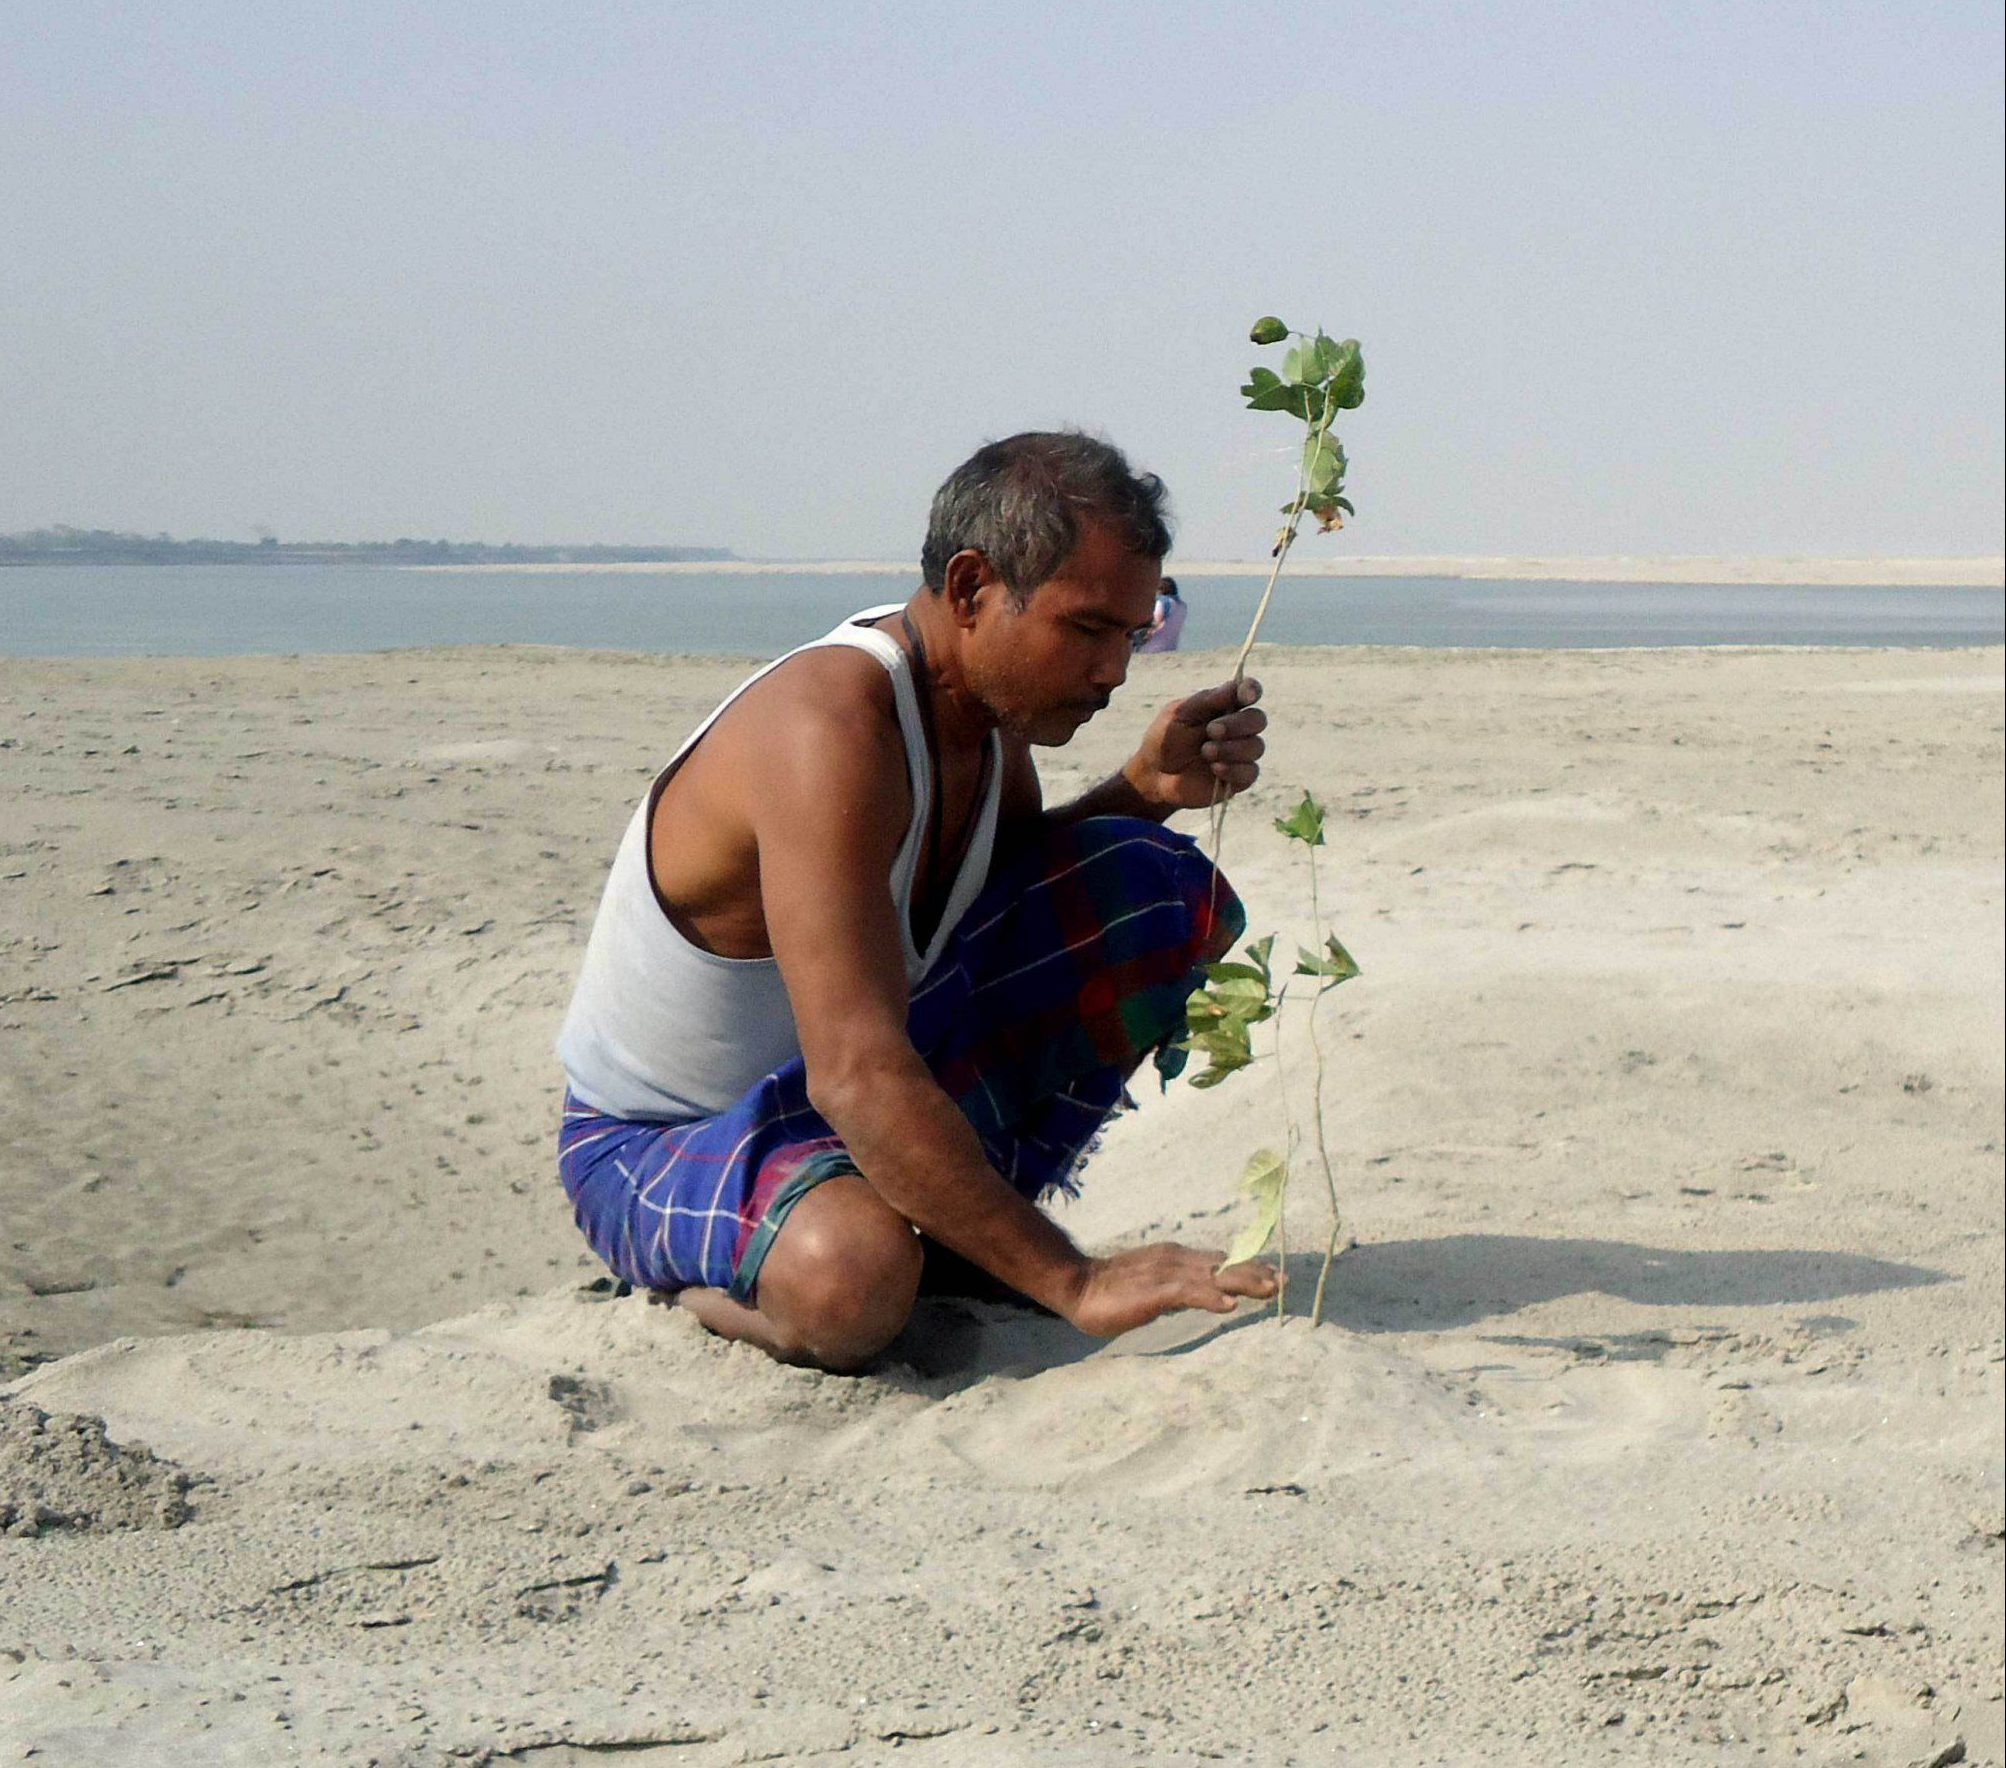 Forest Man of India, Jadav Payeng, palnting tree in his sandbar; Shutterstock ID 622849907; Purchase Order: -